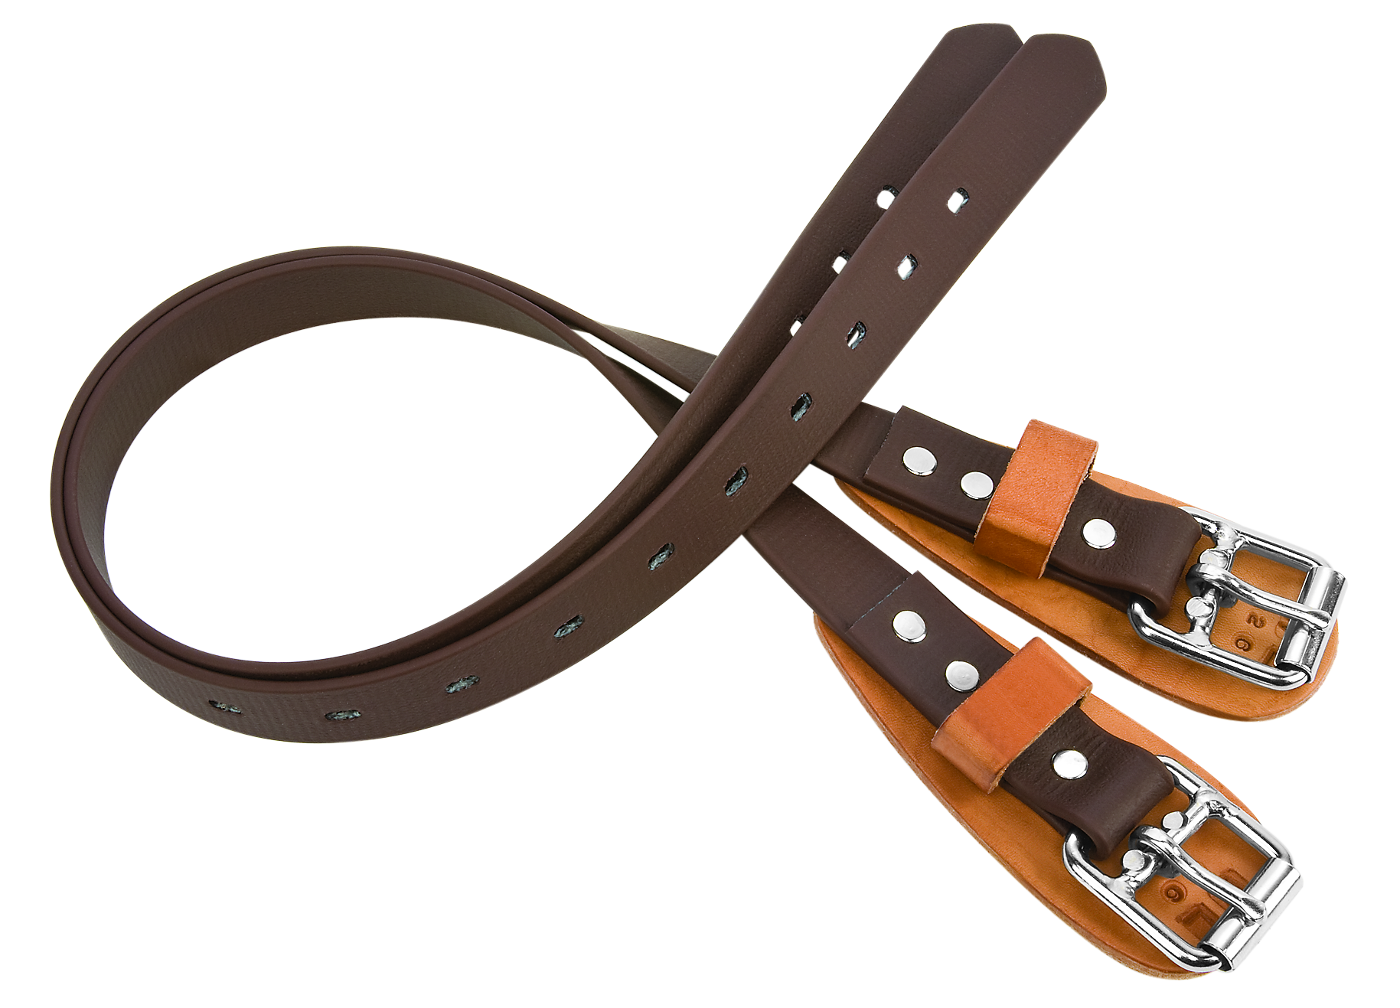 Pair of Upper Climber Straps — 26 inches WE-08-98001-26